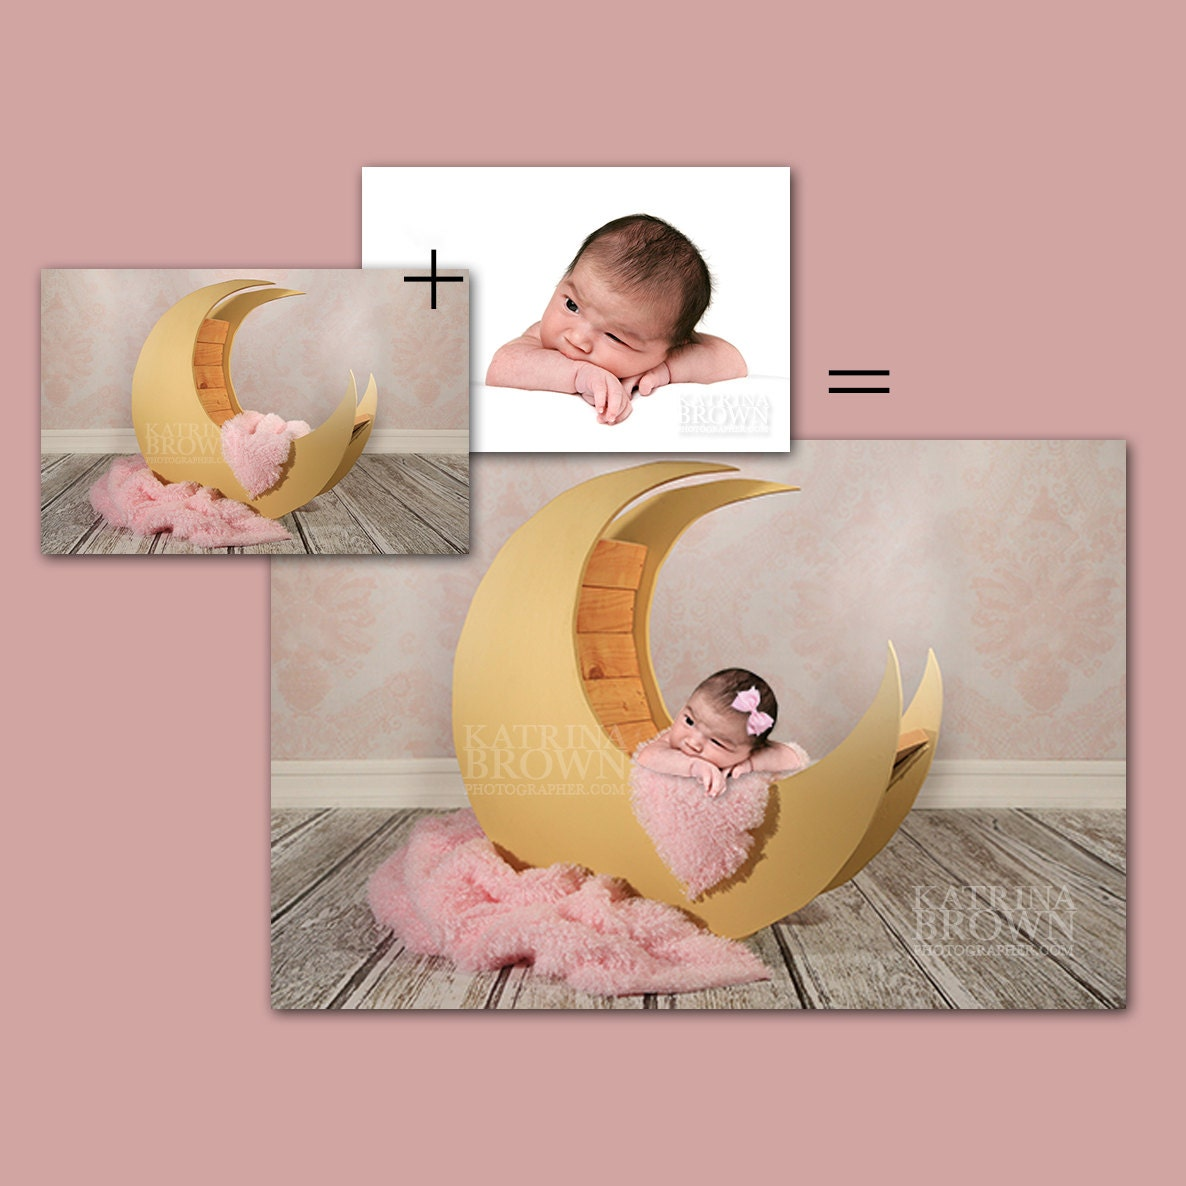 Pink moon prop for infant newborn photography 2 digital files etsy